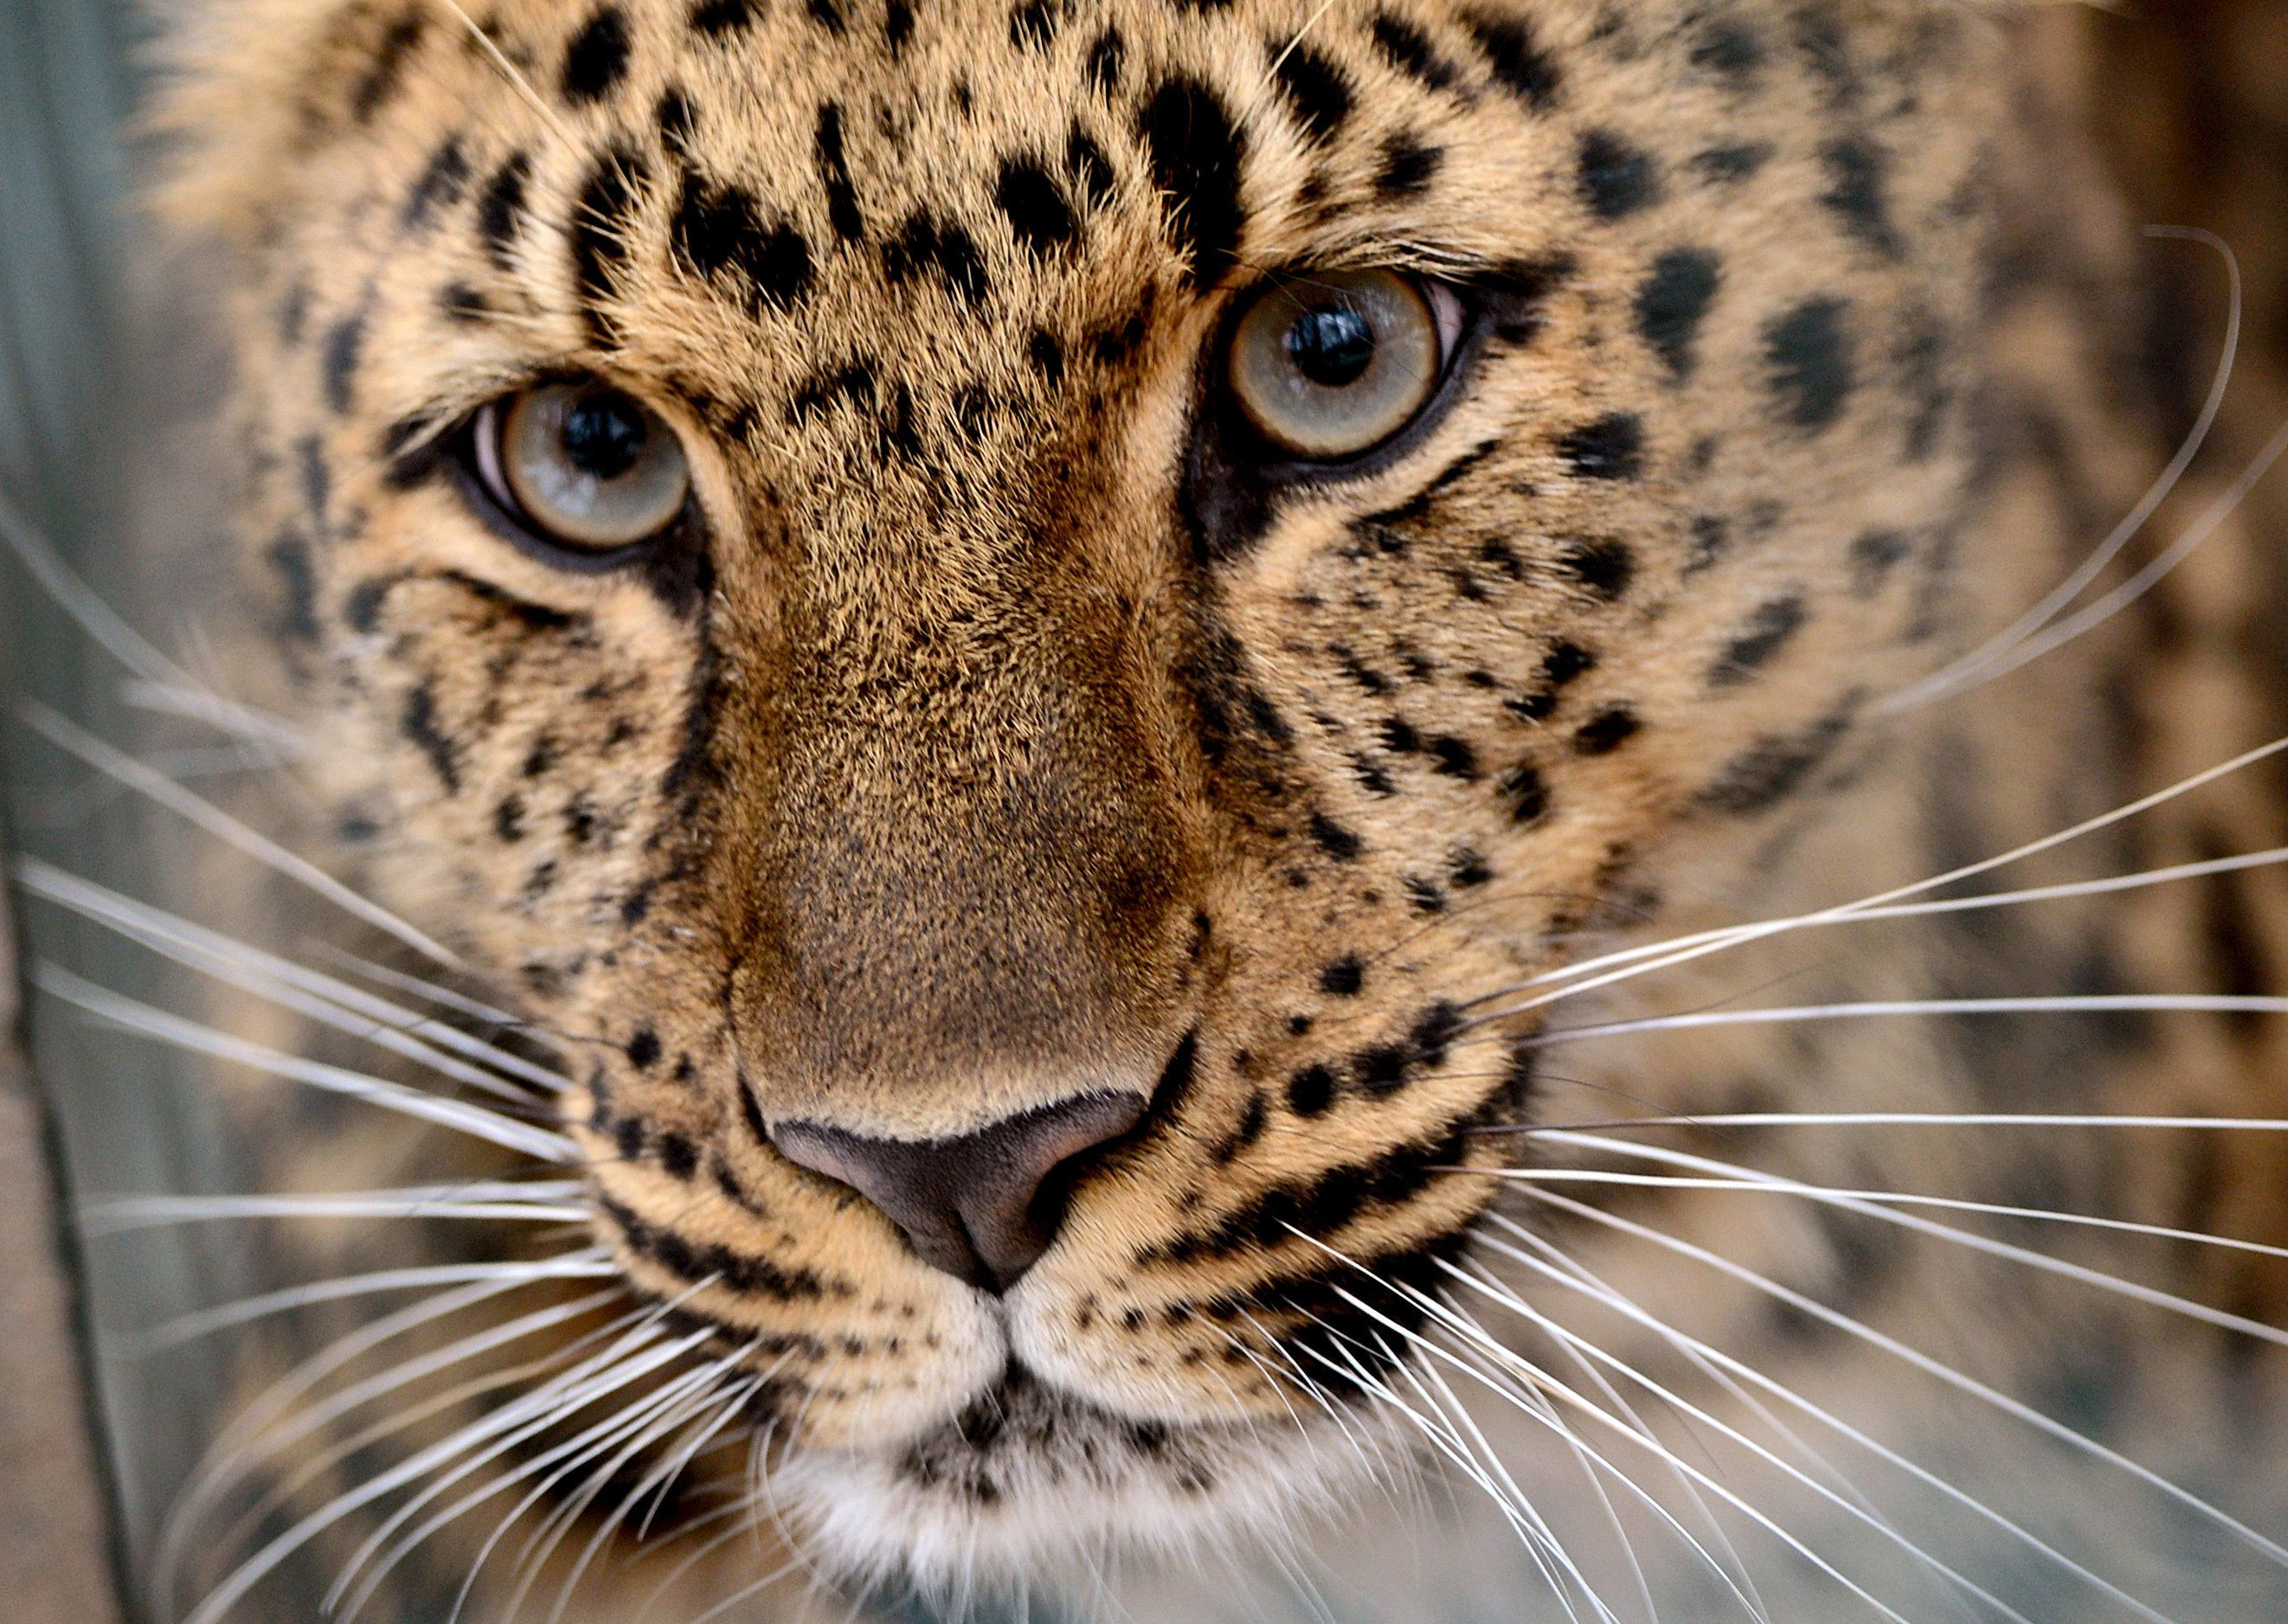 In Big Win For Big Cats, China Approves National Park Larger Than